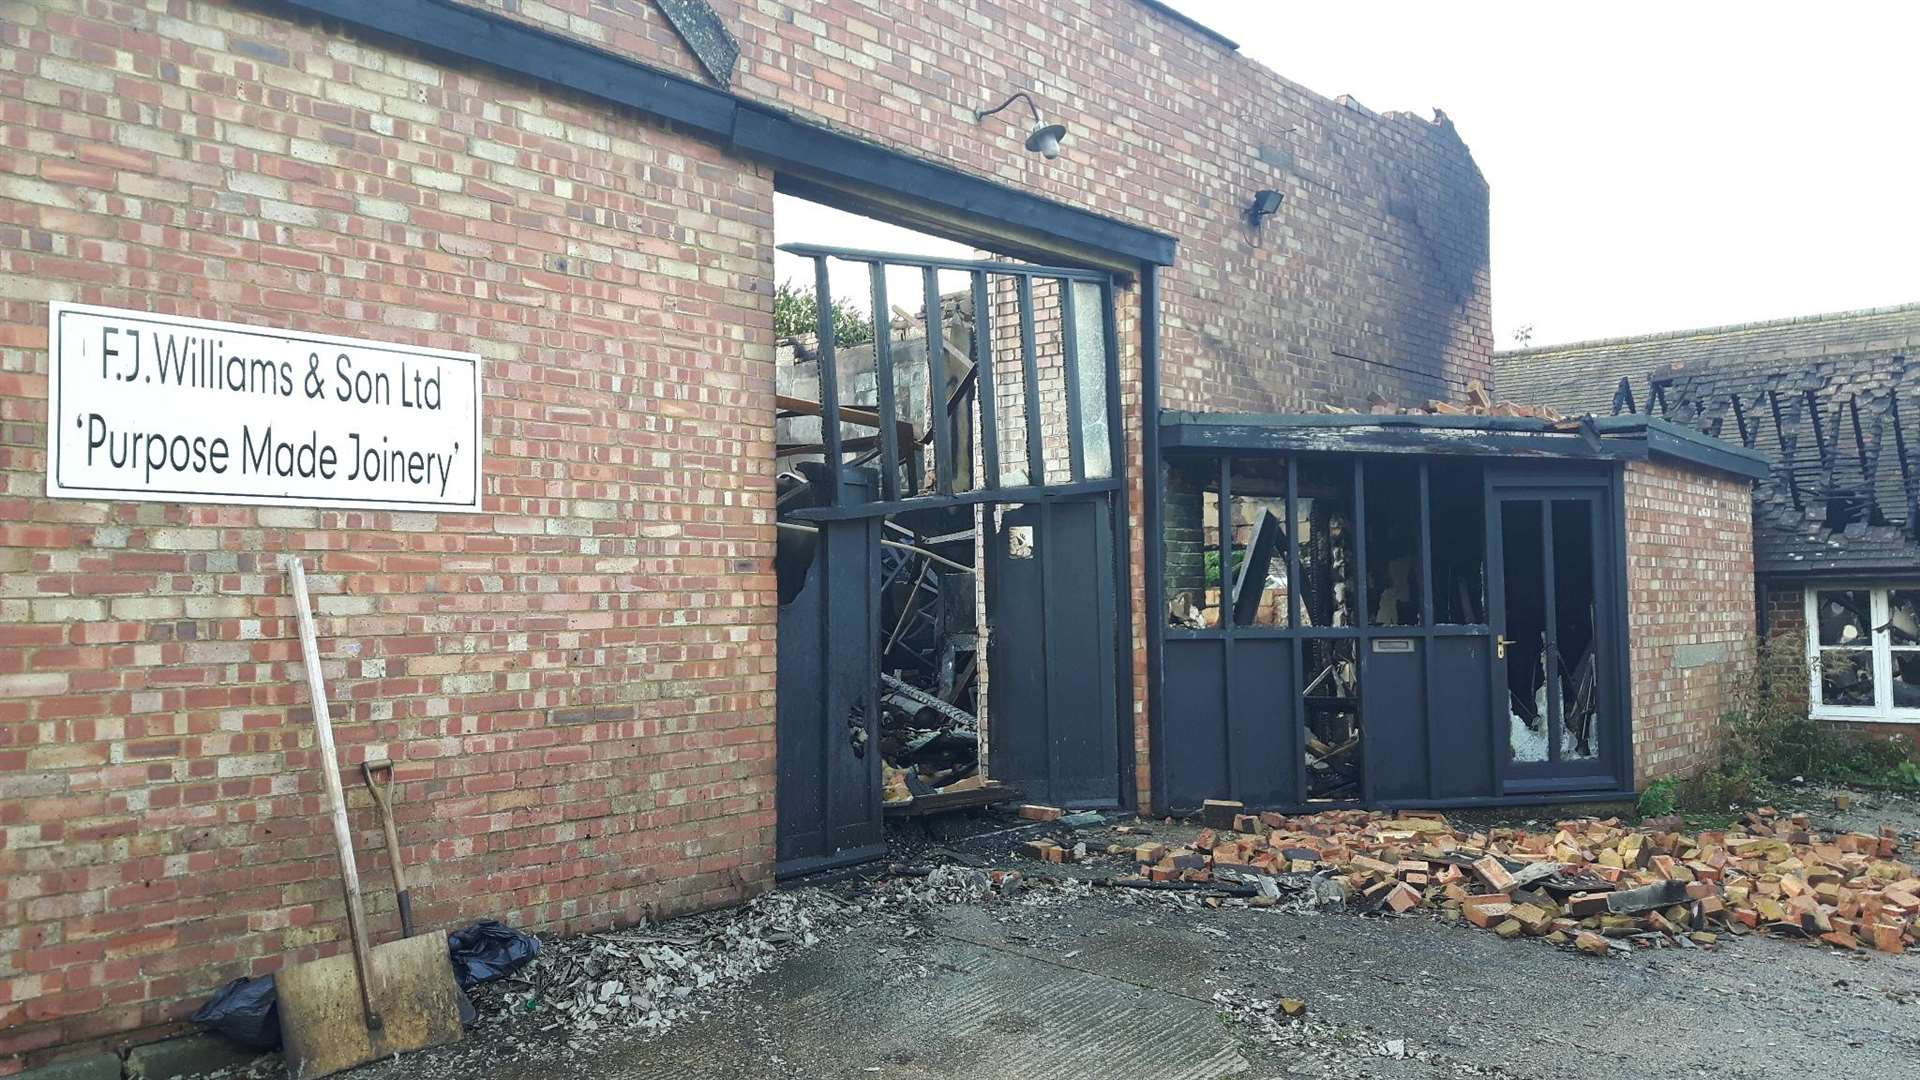 Gutted: the remains of the FJ Williams joinery workshop in London Road, Teynham, after the fire